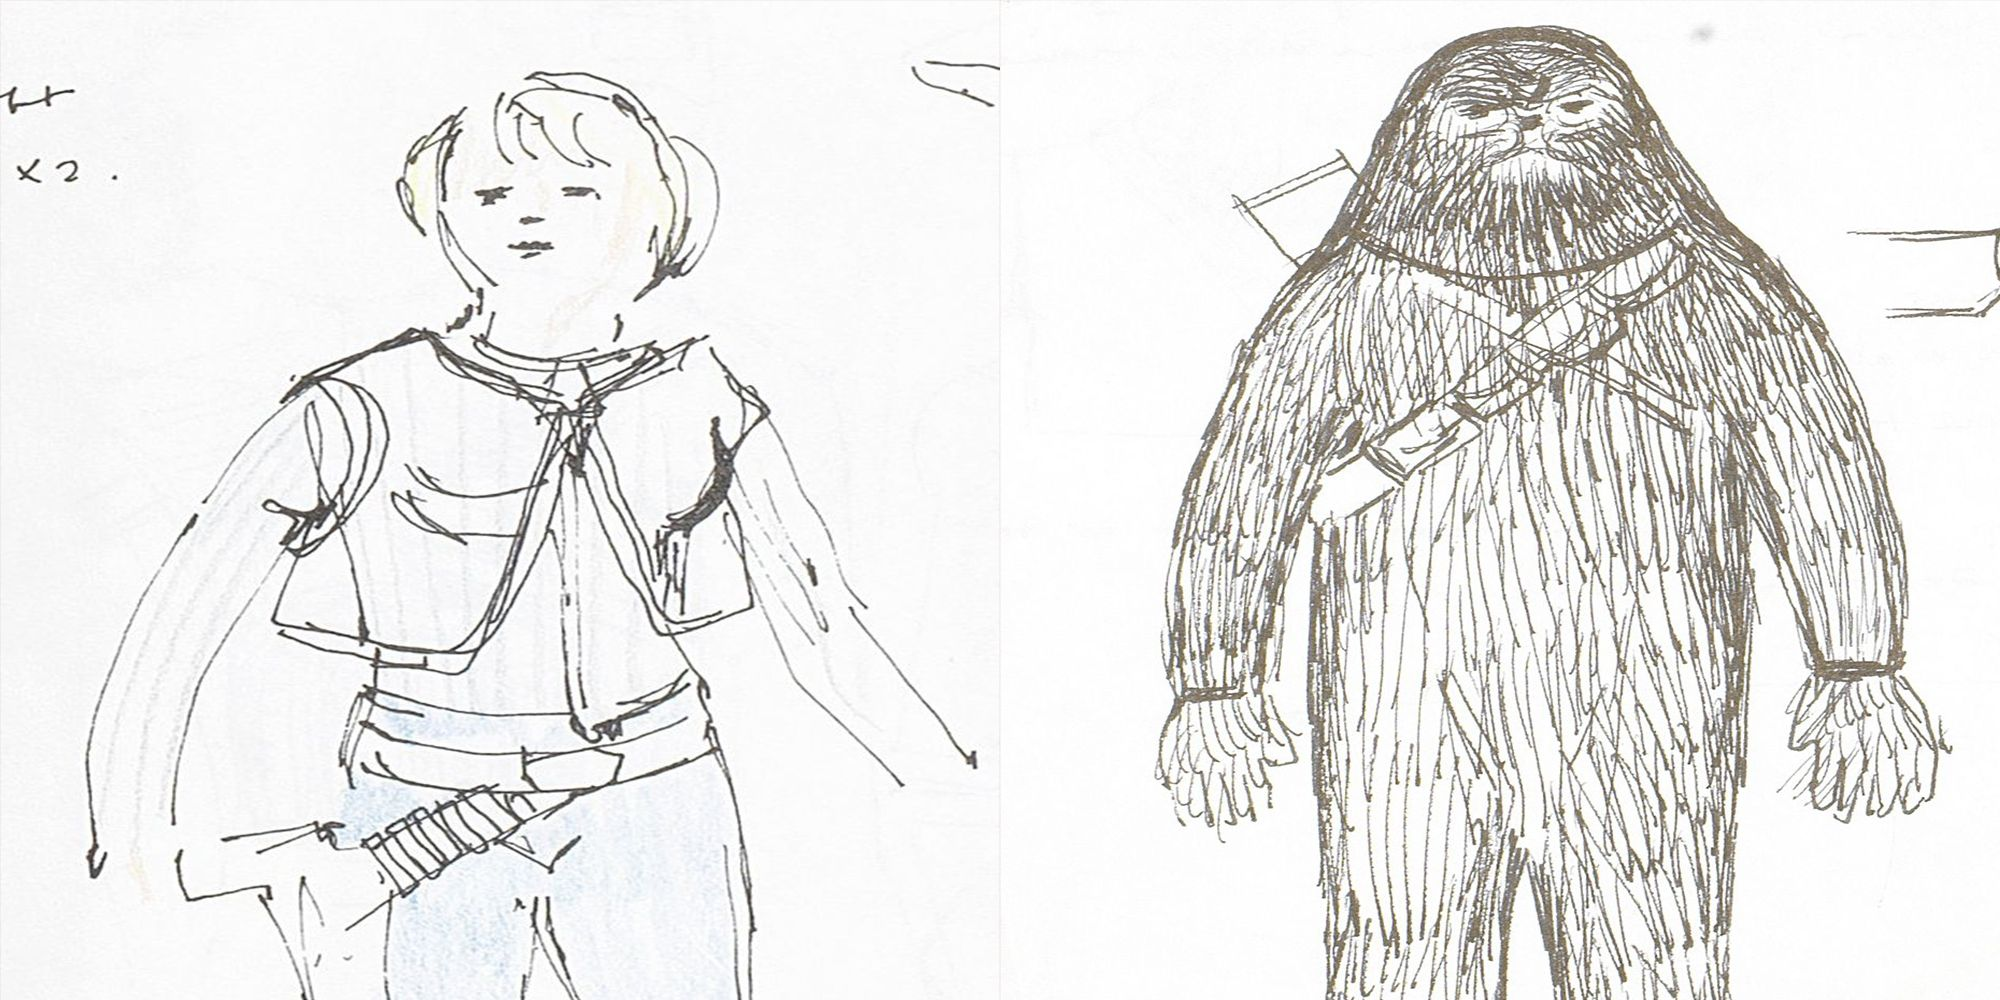 These Original Hand-Drawn 'Star Wars' Costume Sketches Could Be Worth Over $300,000